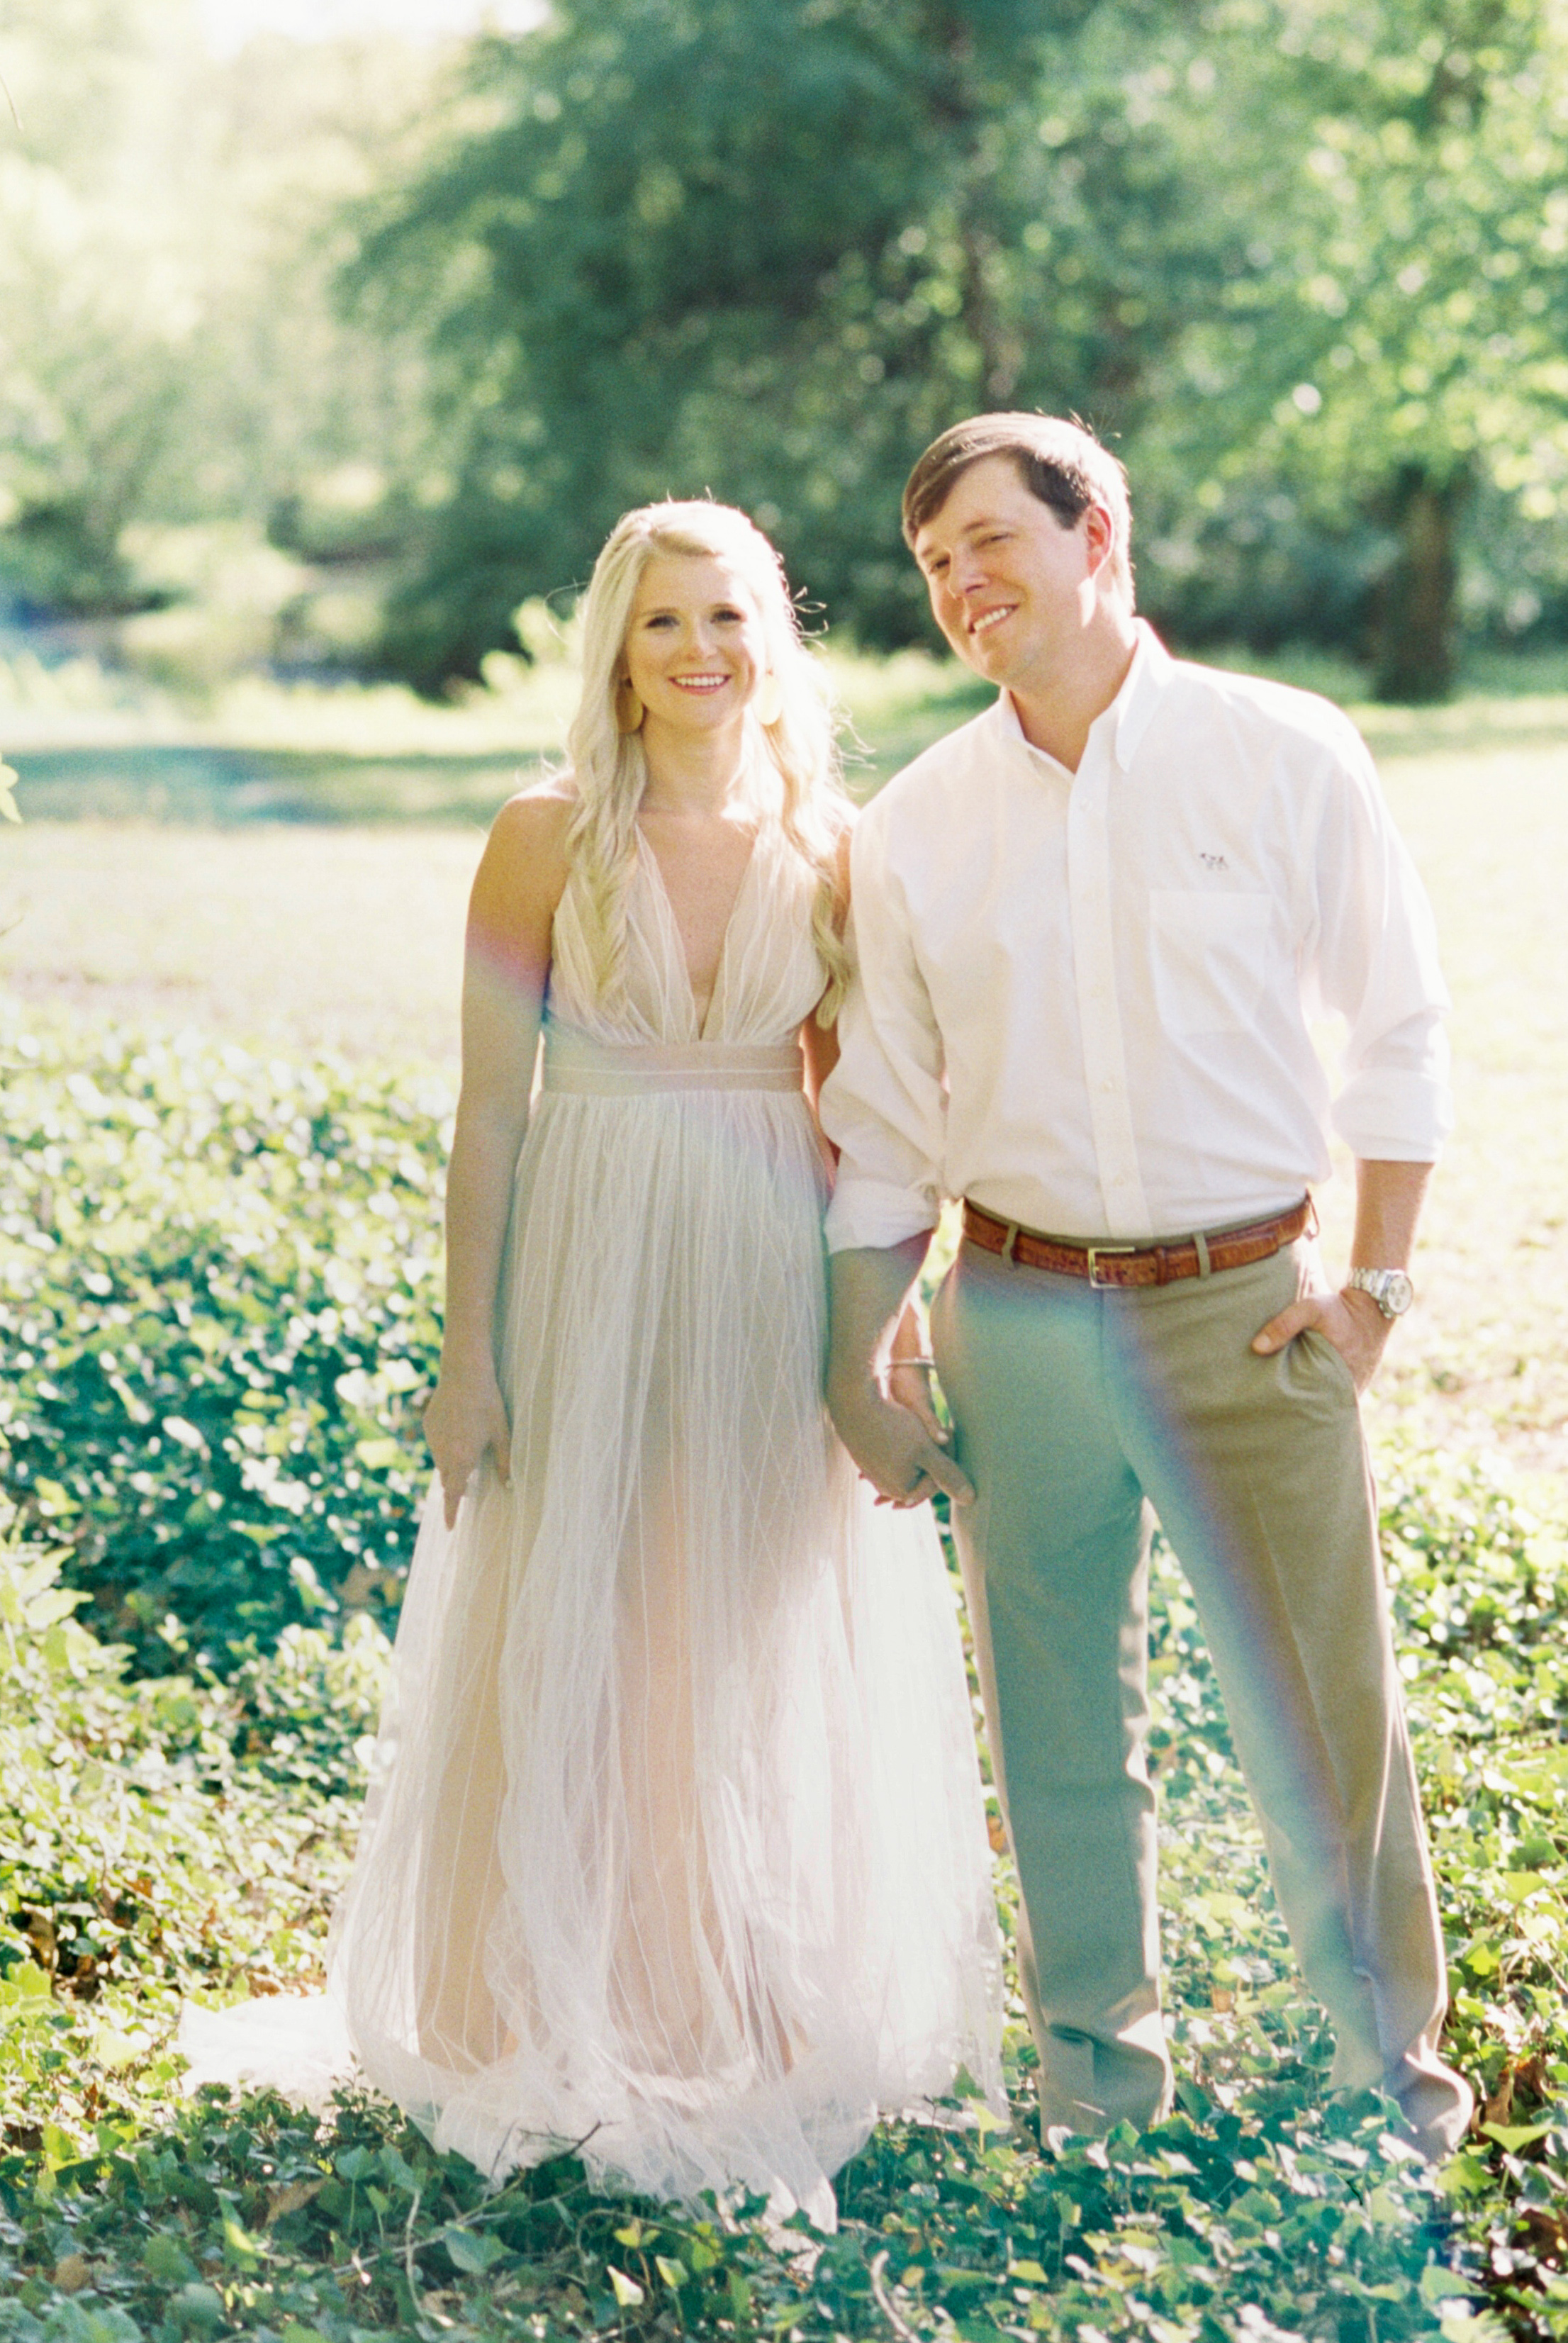 Erin_Johnny_Engagement_Dunaway_Gardens_Georgia_Film_Fallen_Photography-71.JPG